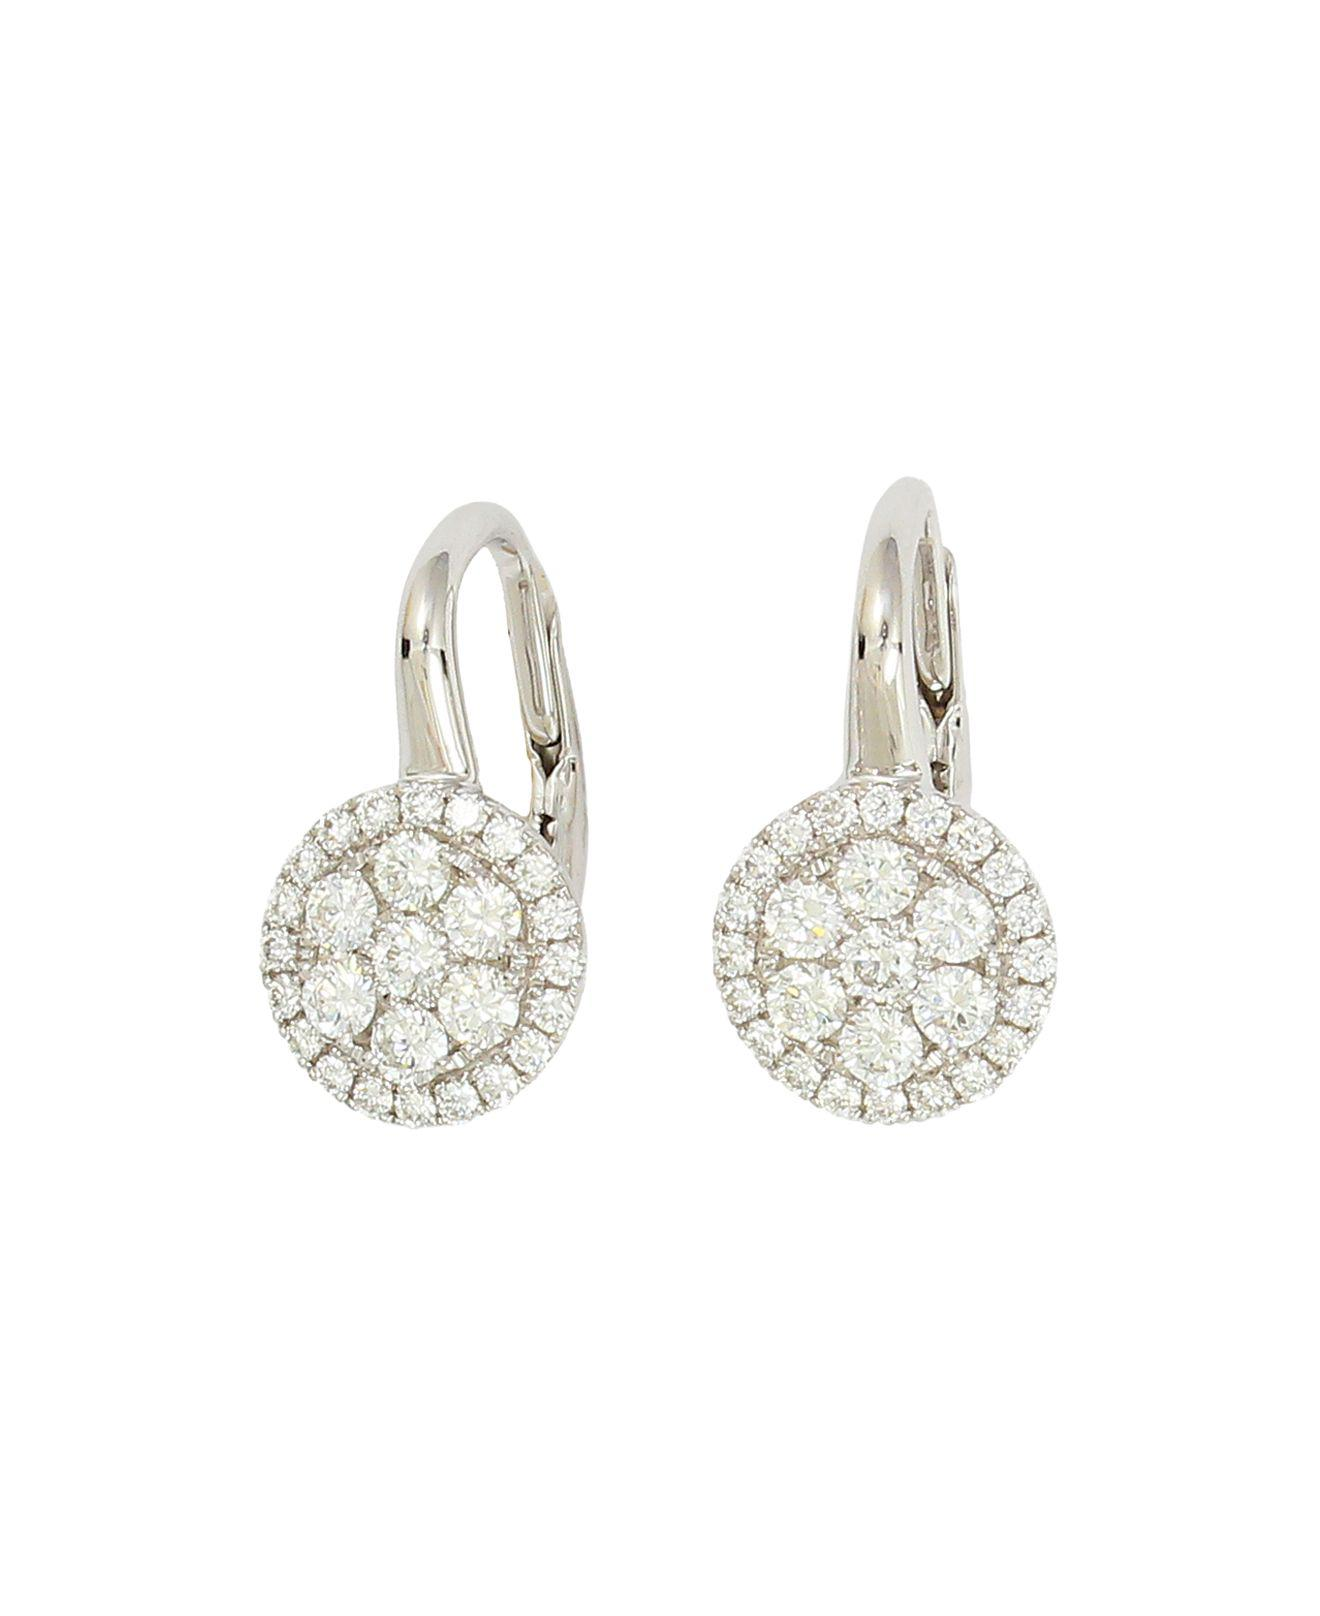 cluster anzie angela betteridge earrings dew drop jewellery shop